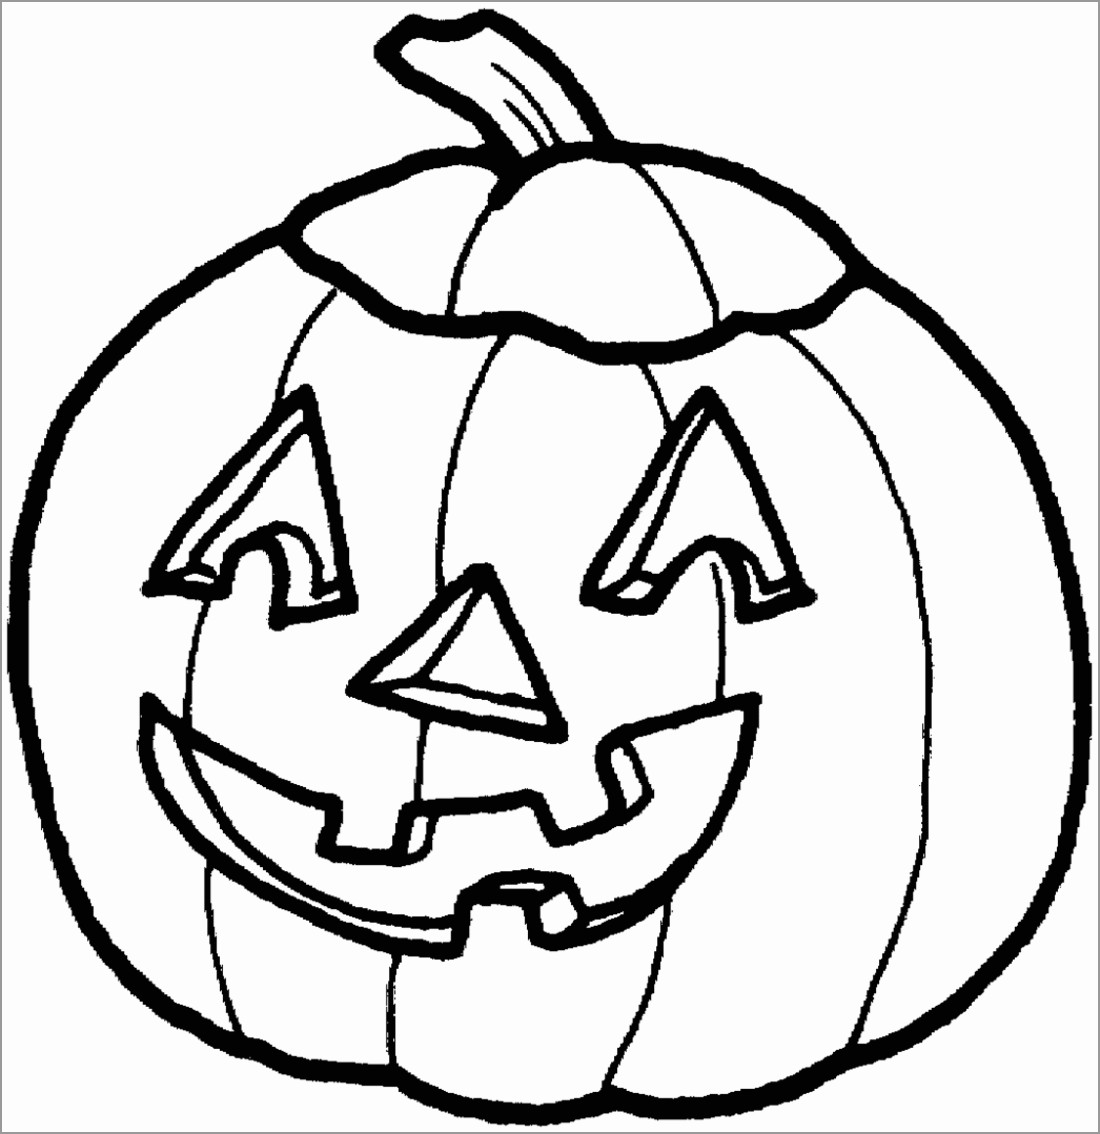 Pumpkin Halloween Coloring Pages for Kids